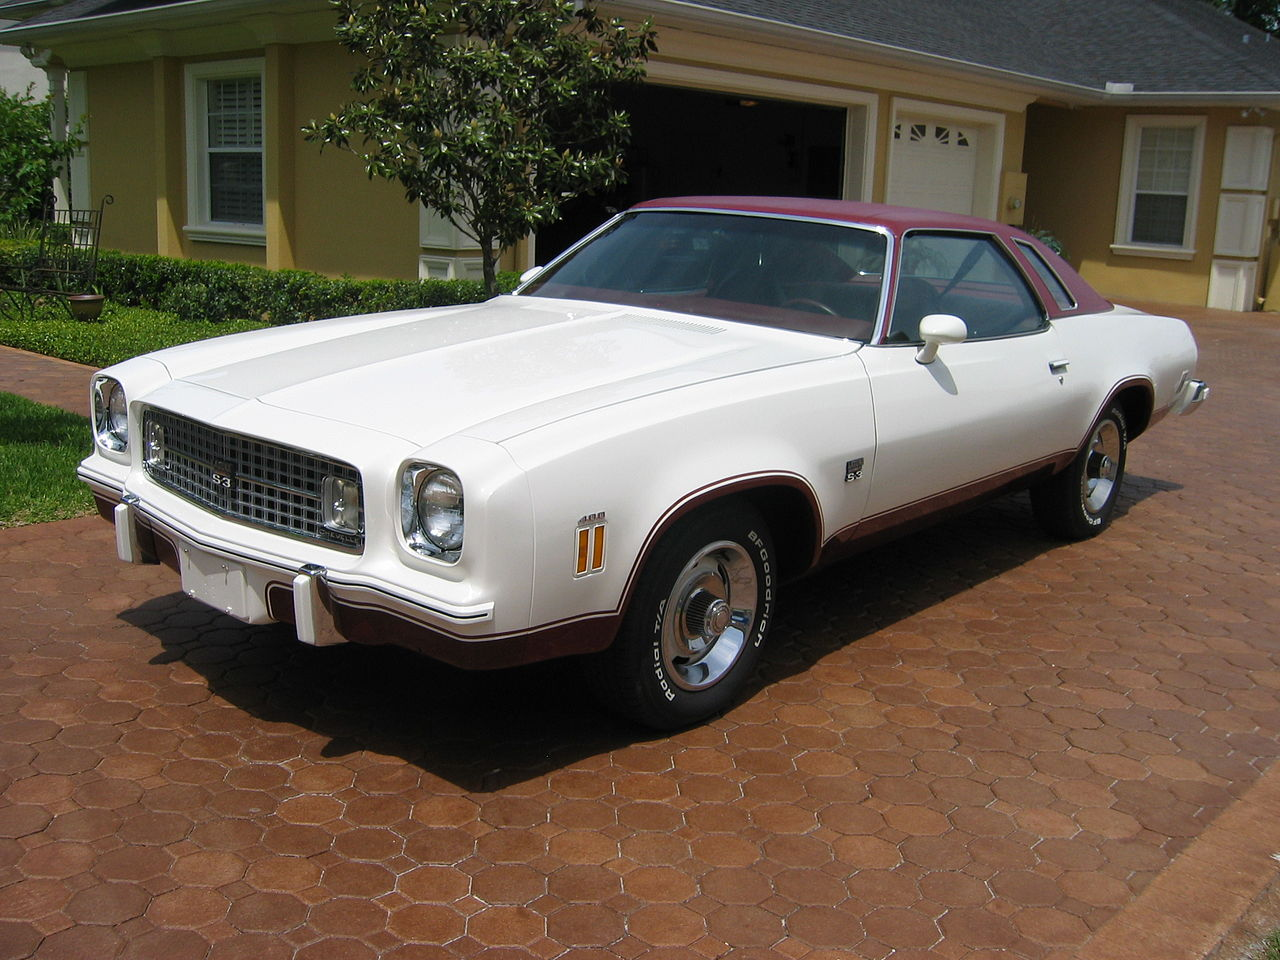 Valley Chevy Phoenix - Forgotten Chevrolets: Laguna